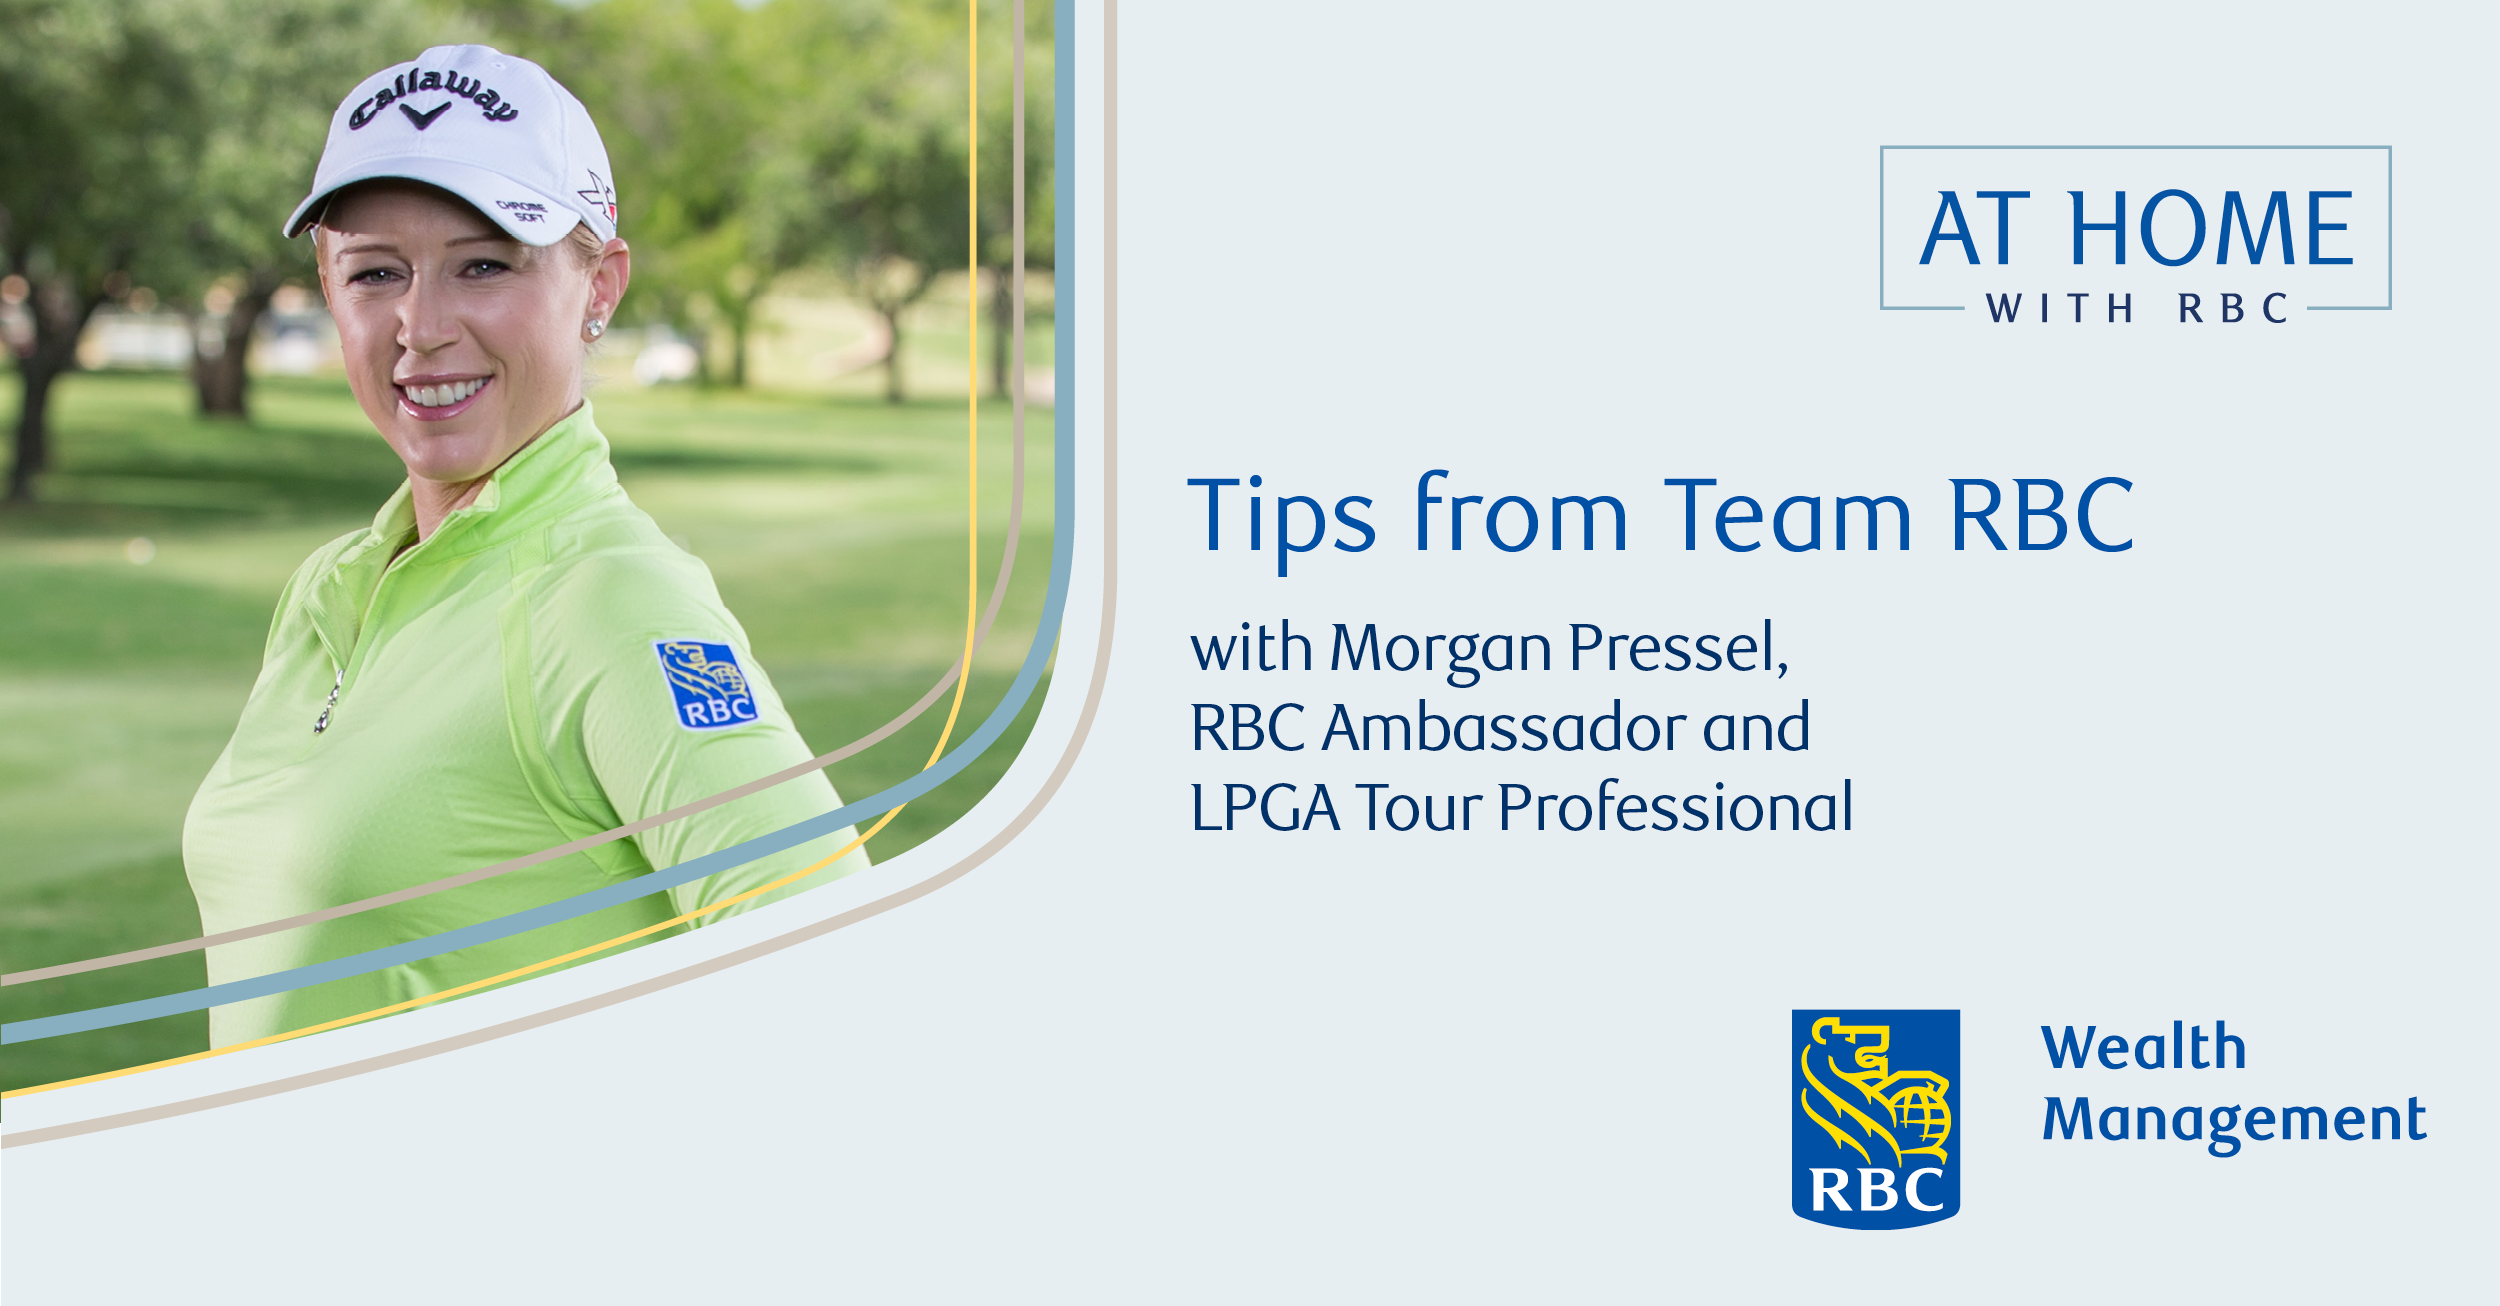 Tips from Team RBC Morgan Pressel